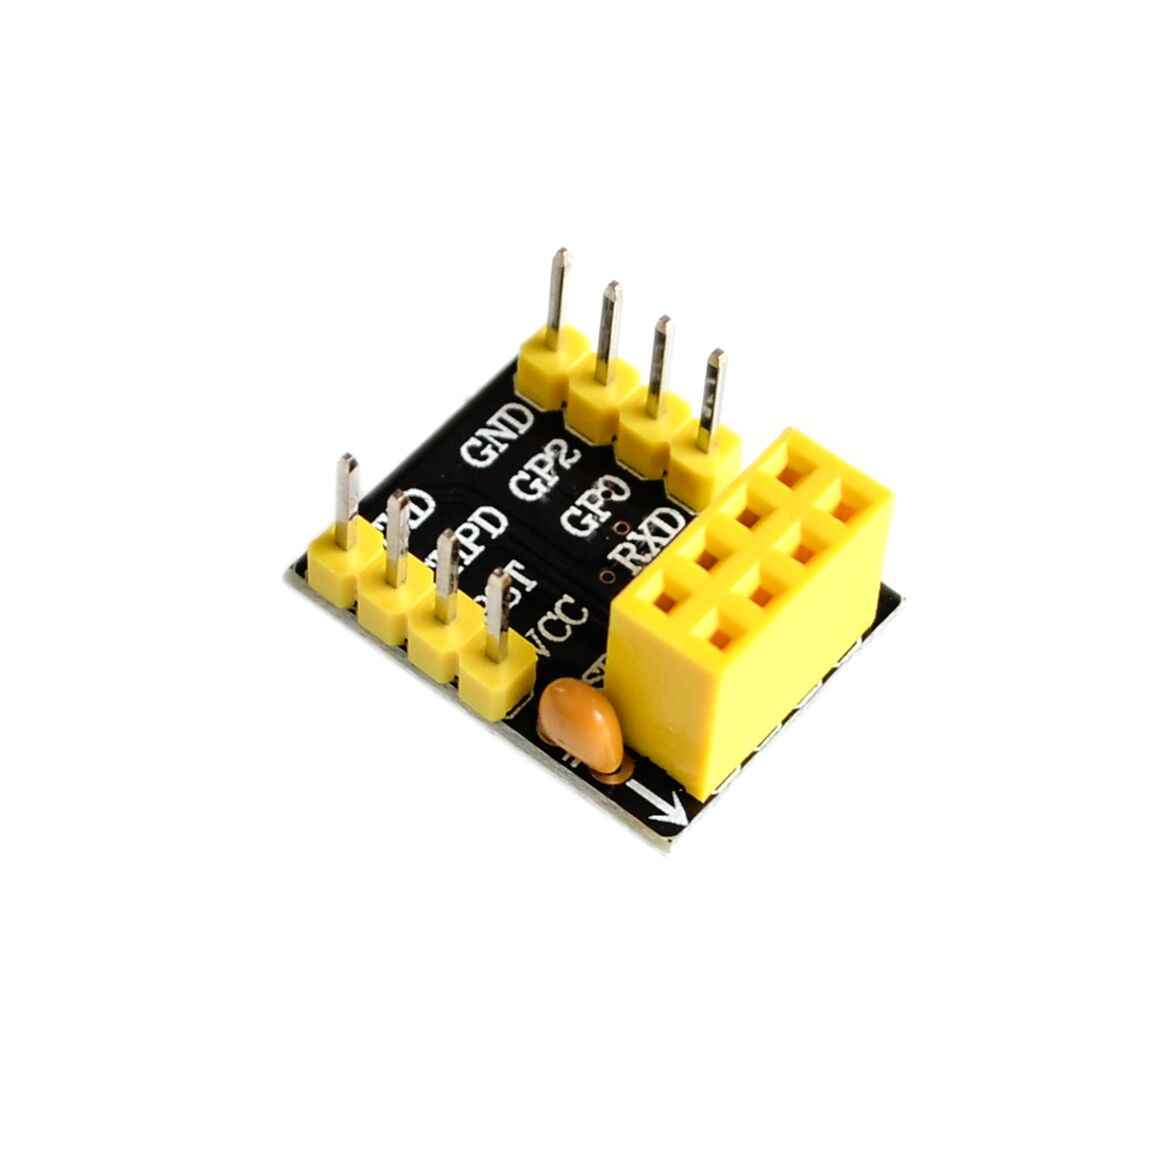 For ESP-01 Esp8266 ESP-01S Model Of The ESP8266 Serial Breadboard Adapter To WiFi Transceiver Module Breakout UART Module